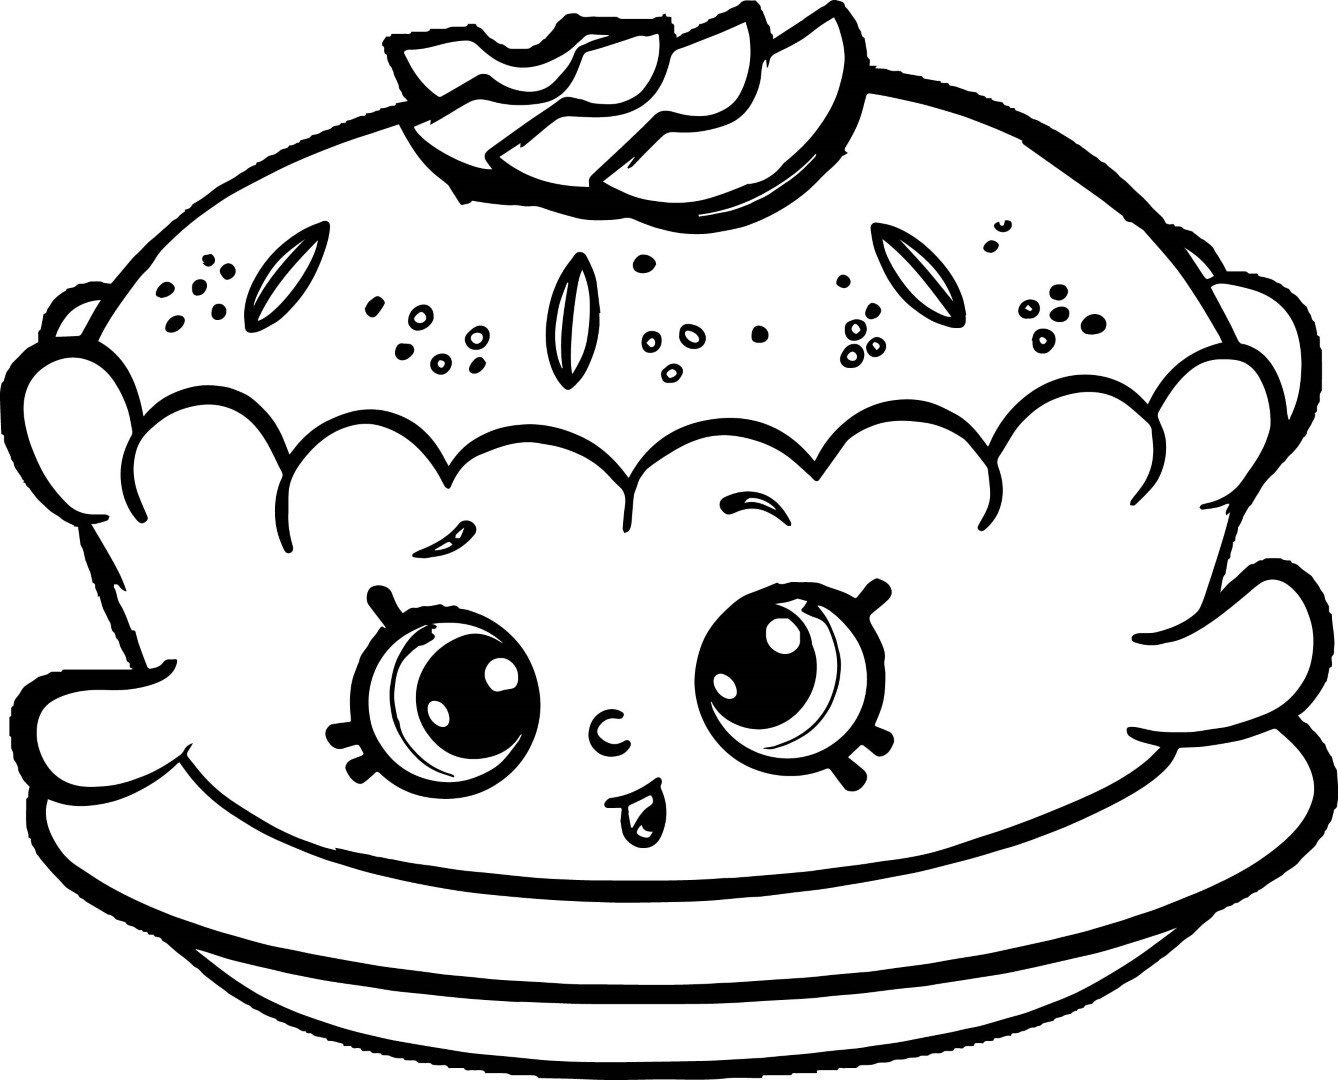 Shopkins Coloring Pages – coloring.rocks!